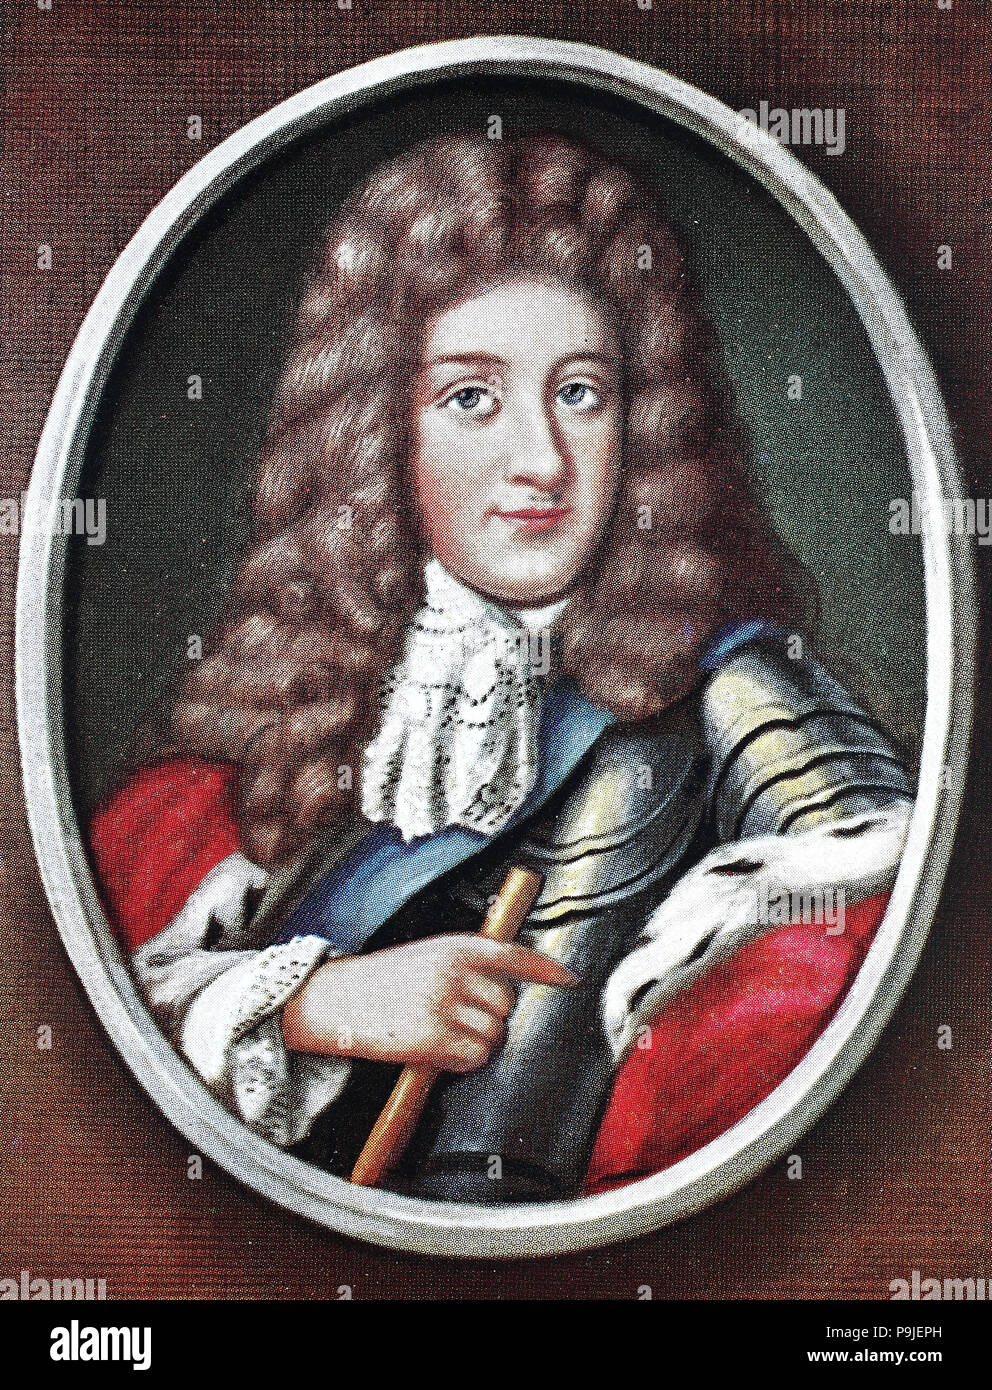 Frederick I, Friedrich I., 11 July 1657 – 25 February 1713, of the Hohenzollern dynasty, was, as Frederick III, Elector of Brandenburg, 1688–1713, and Duke of Prussia in personal union, Brandenburg-Prussia,, digital improved reproduction of an original print from the year 1900 - Stock Image